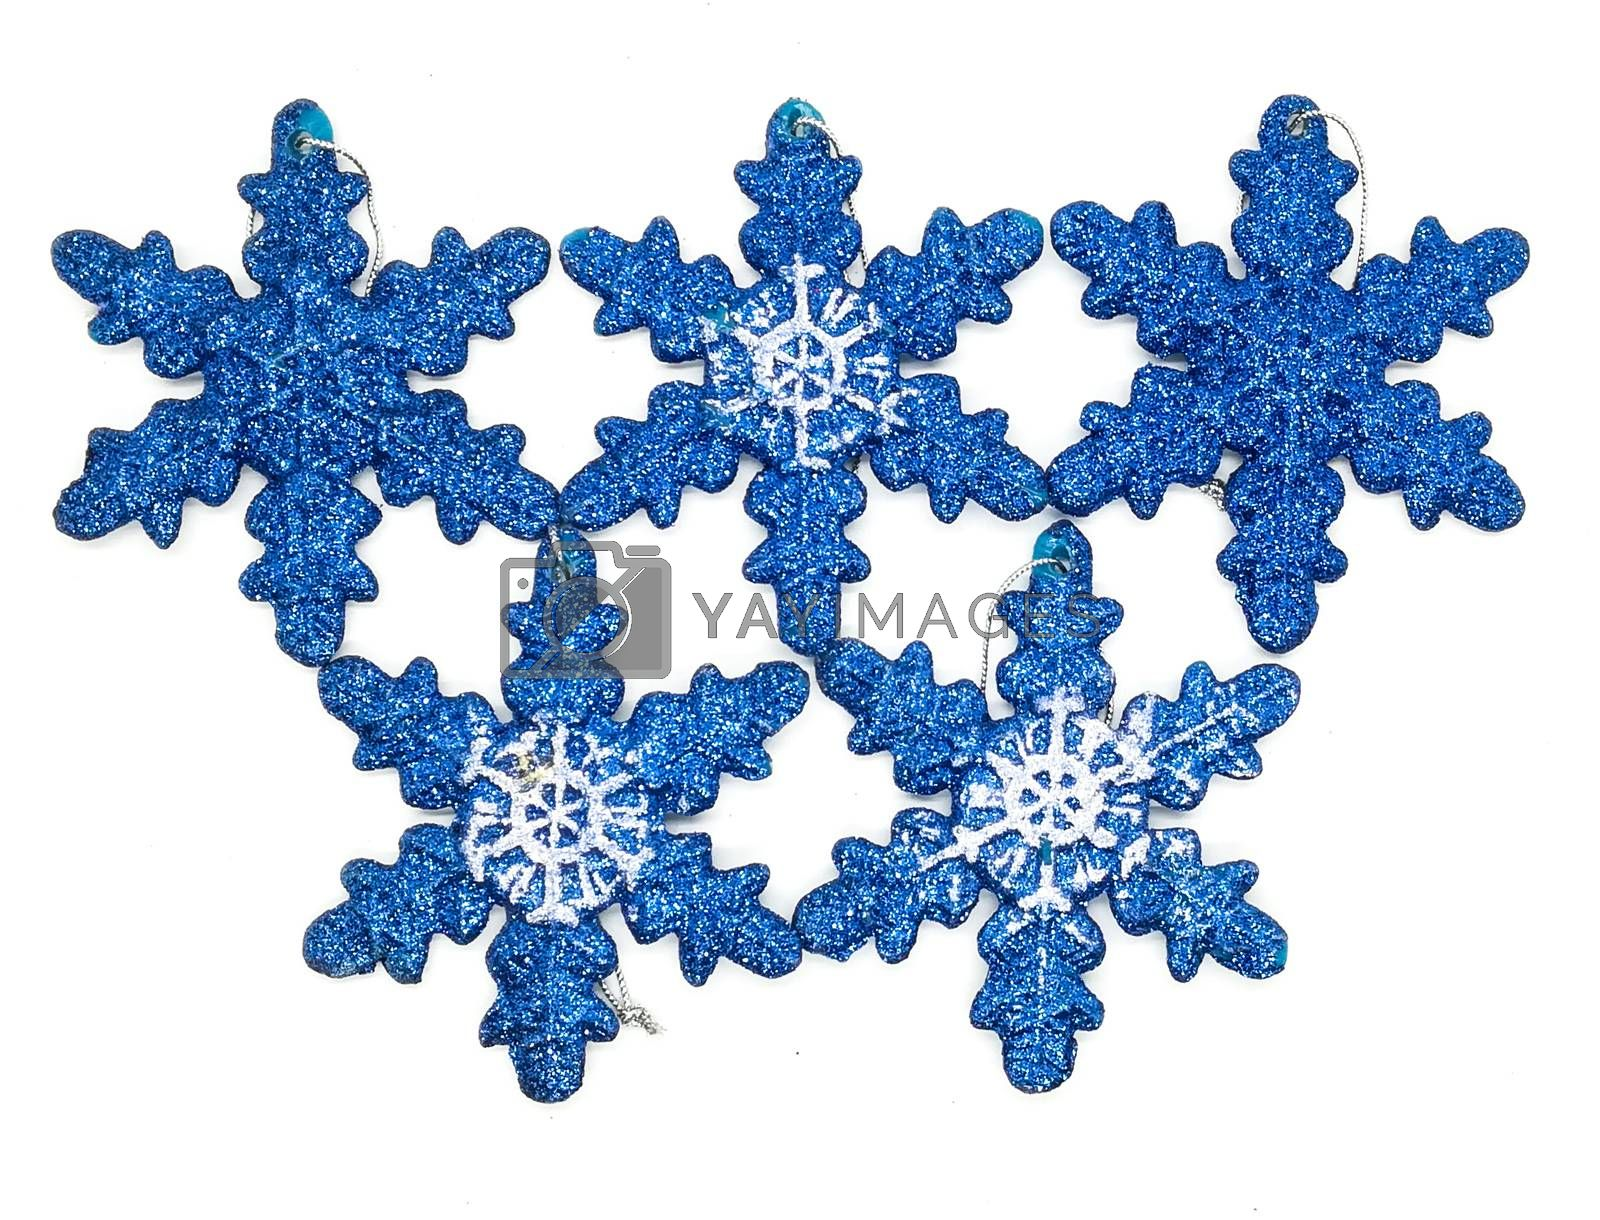 Blue christmas decorations in composition on white background